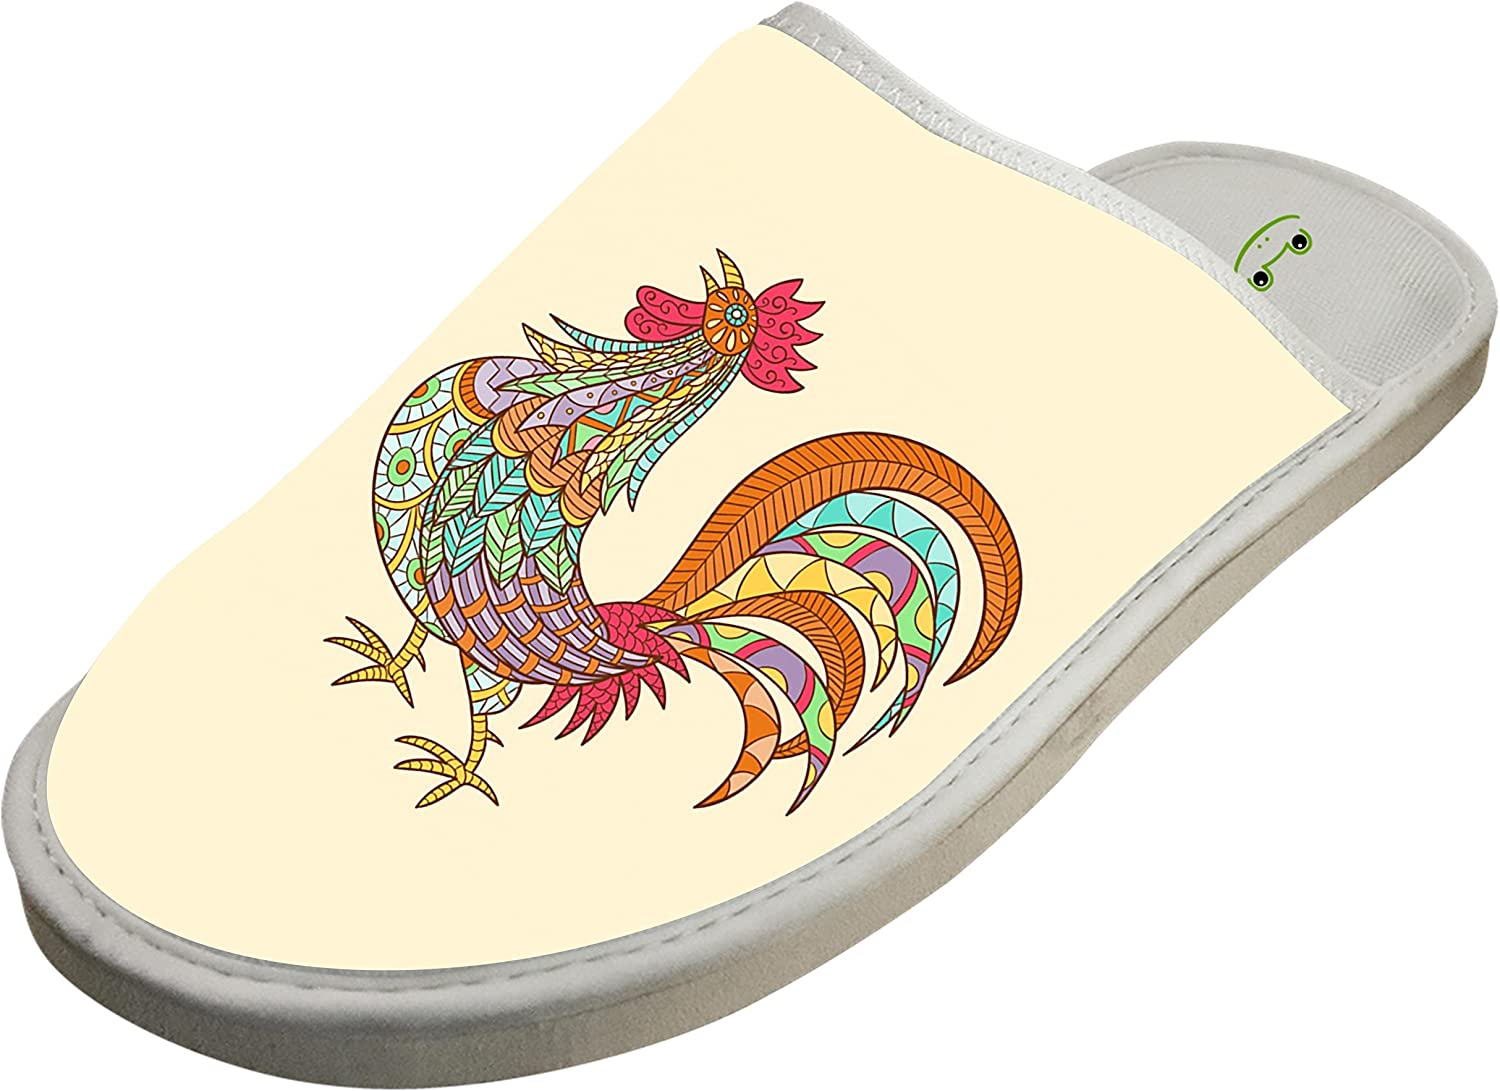 KOUY Beautiful Ethnic Rooster Closed Toe Cotton Slippers Warm Soft Indoor Shoes Non-watertight